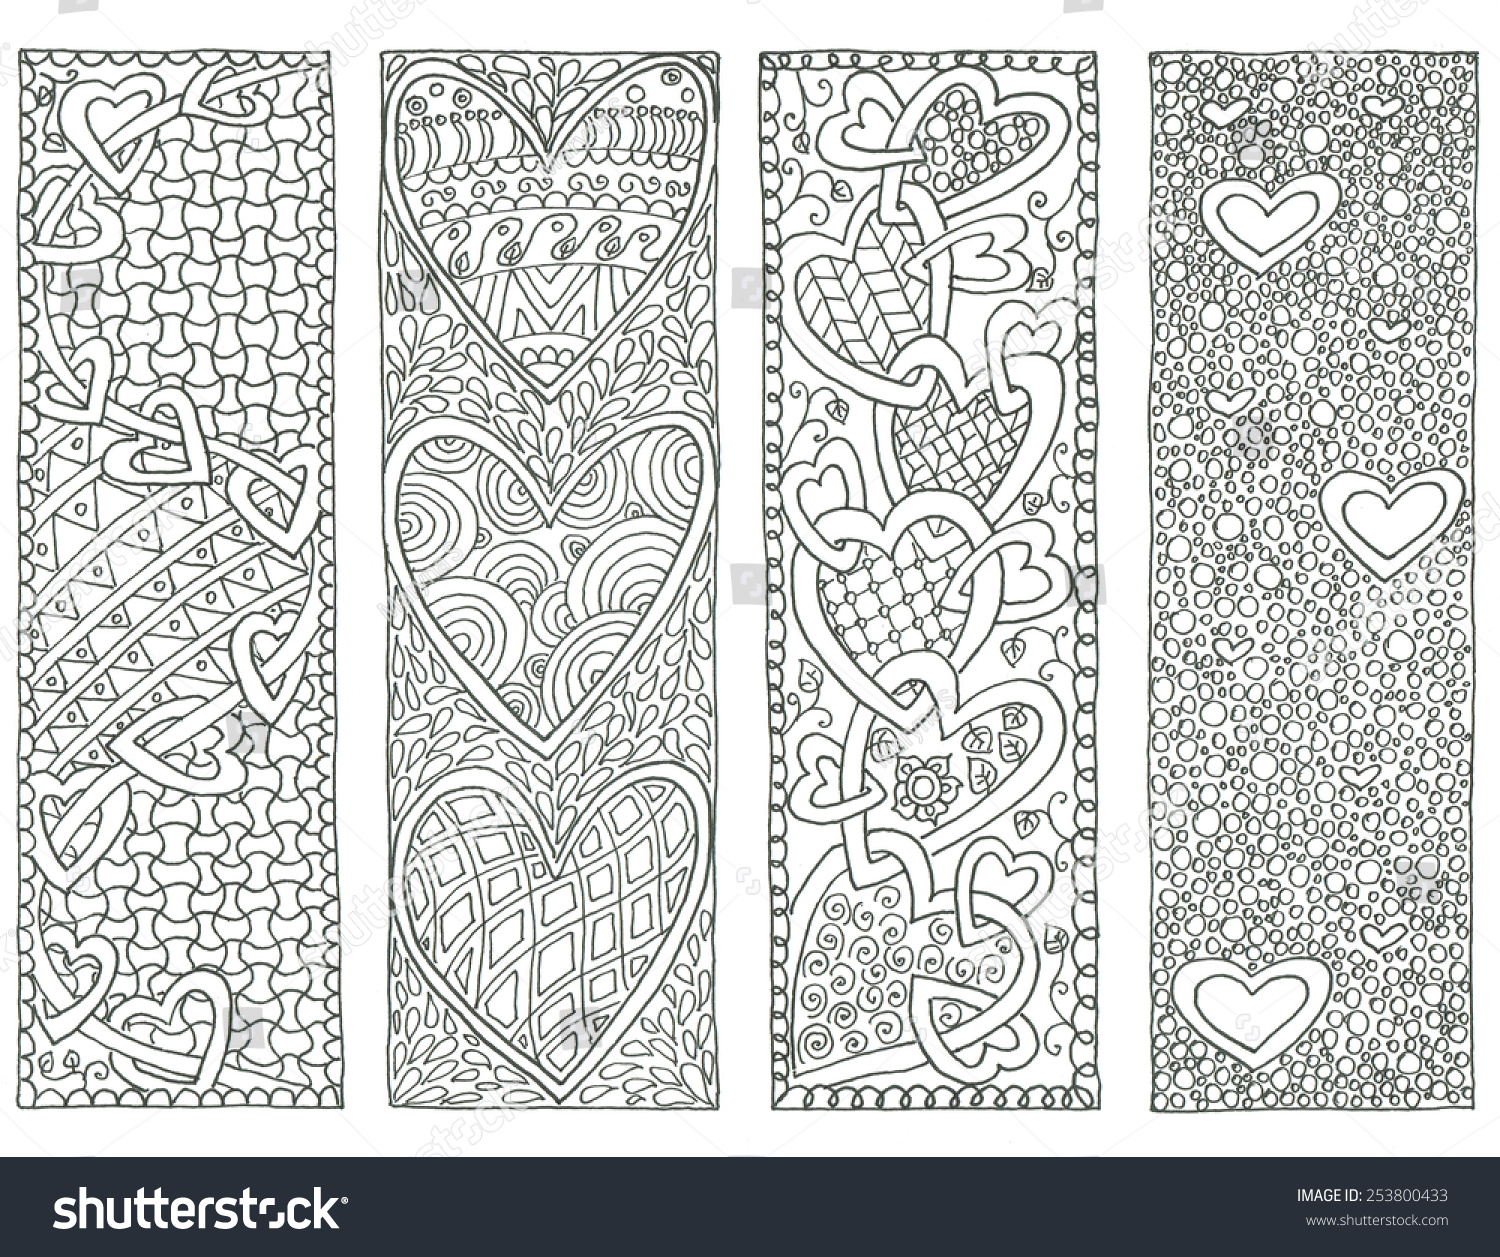 Coloring Page Valentine'S Day Bookmarks Stock Photo